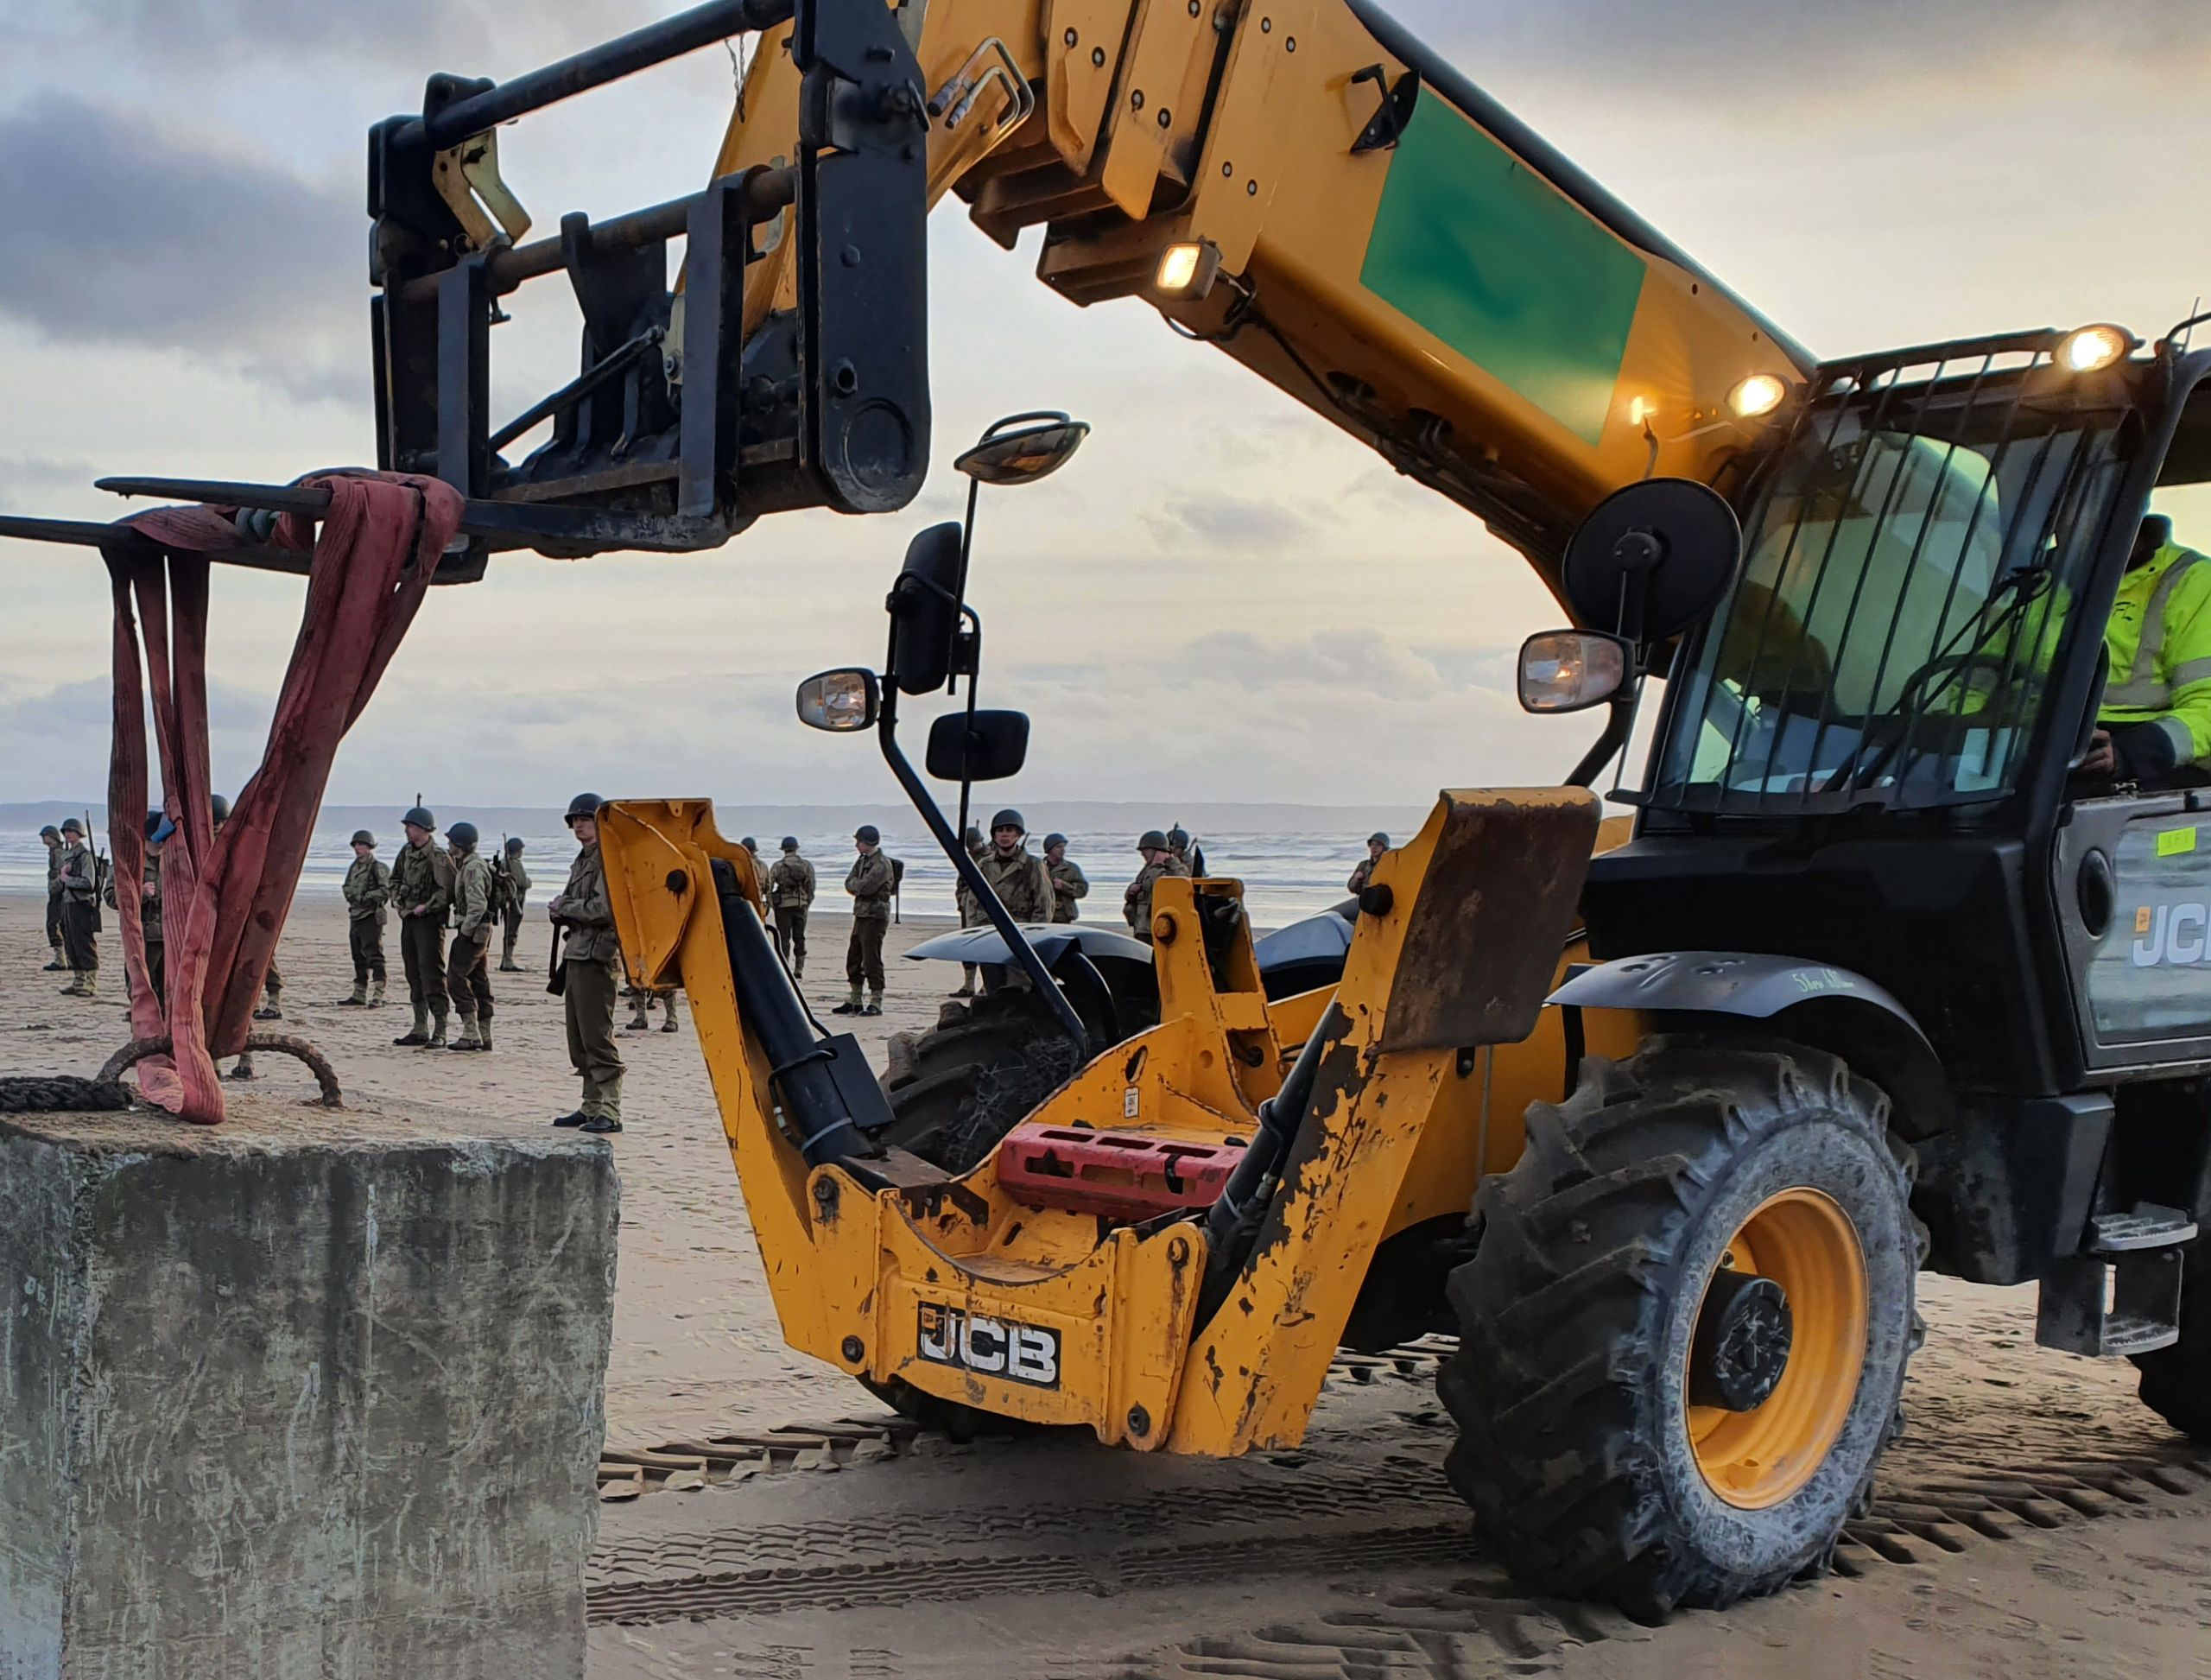 Telehandler moving a mooring block on the beach during filming